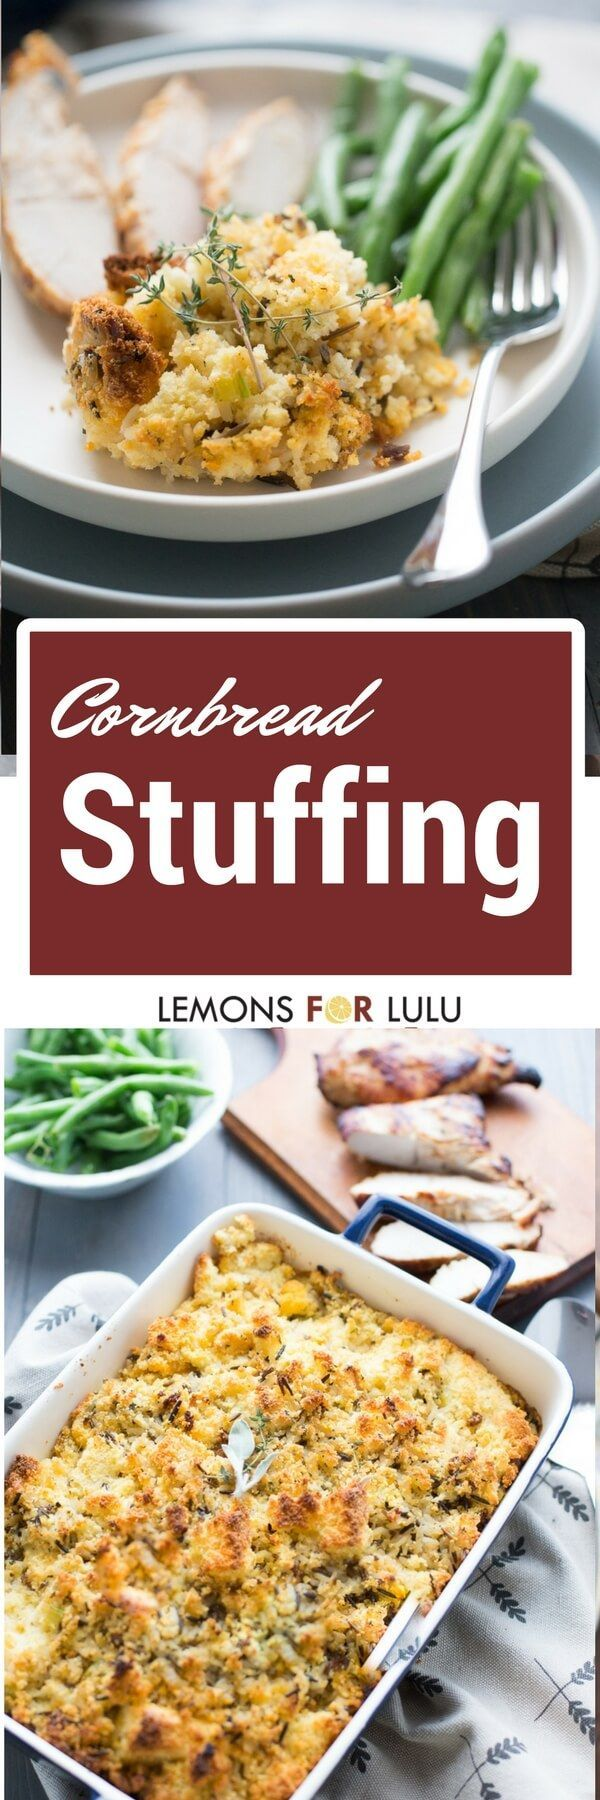 Some think the stuffing is the best! I guarantee this easy cornbread stuffing recipe will be the first to go during Thanksgiving or any meal!